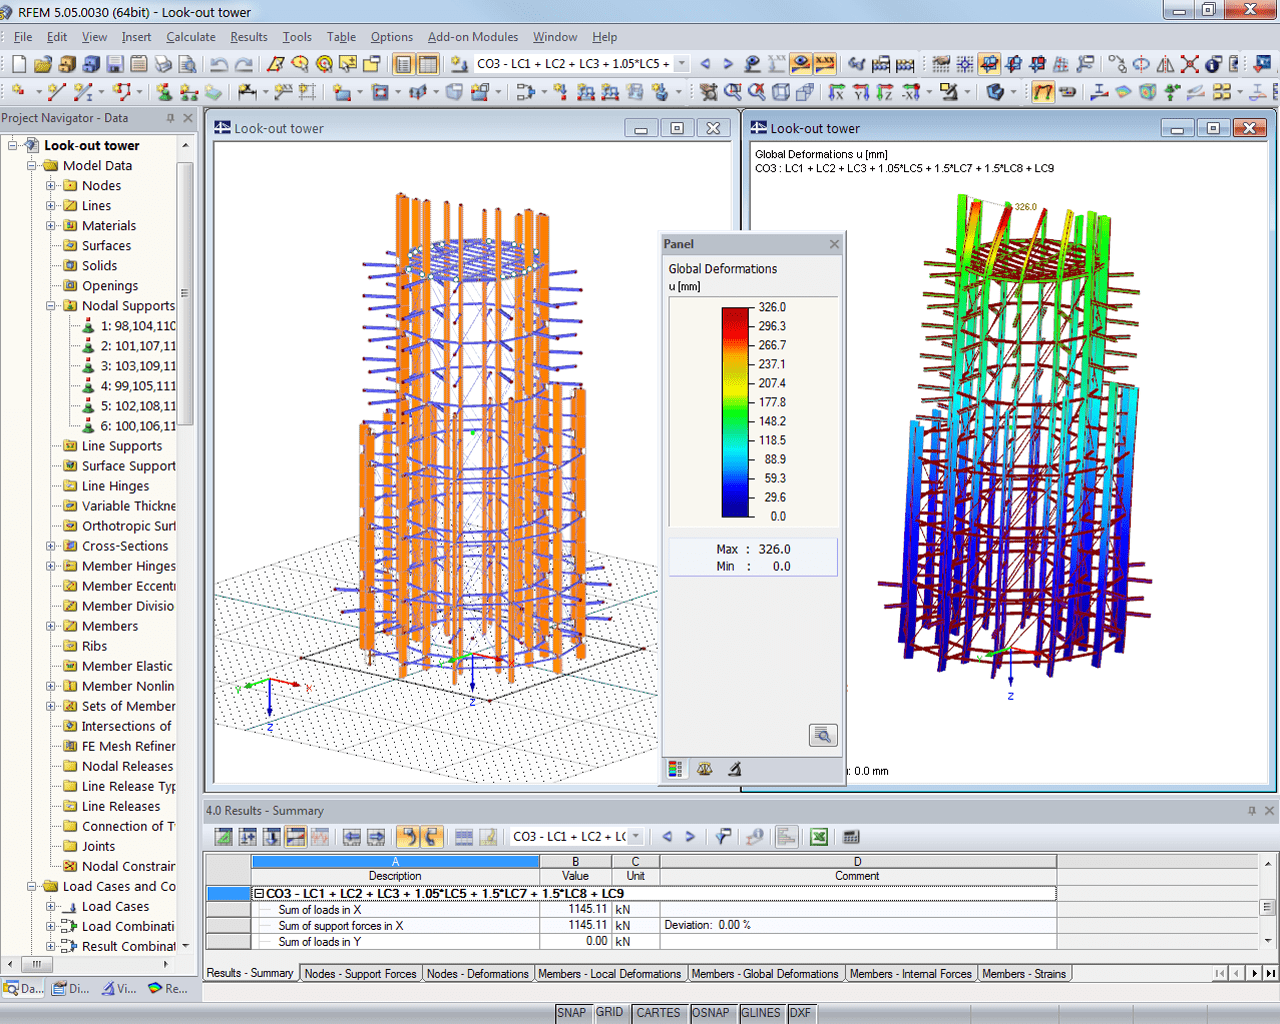 D model of look-out tower and deformation in RFEM (© Harrer Ingenieure)